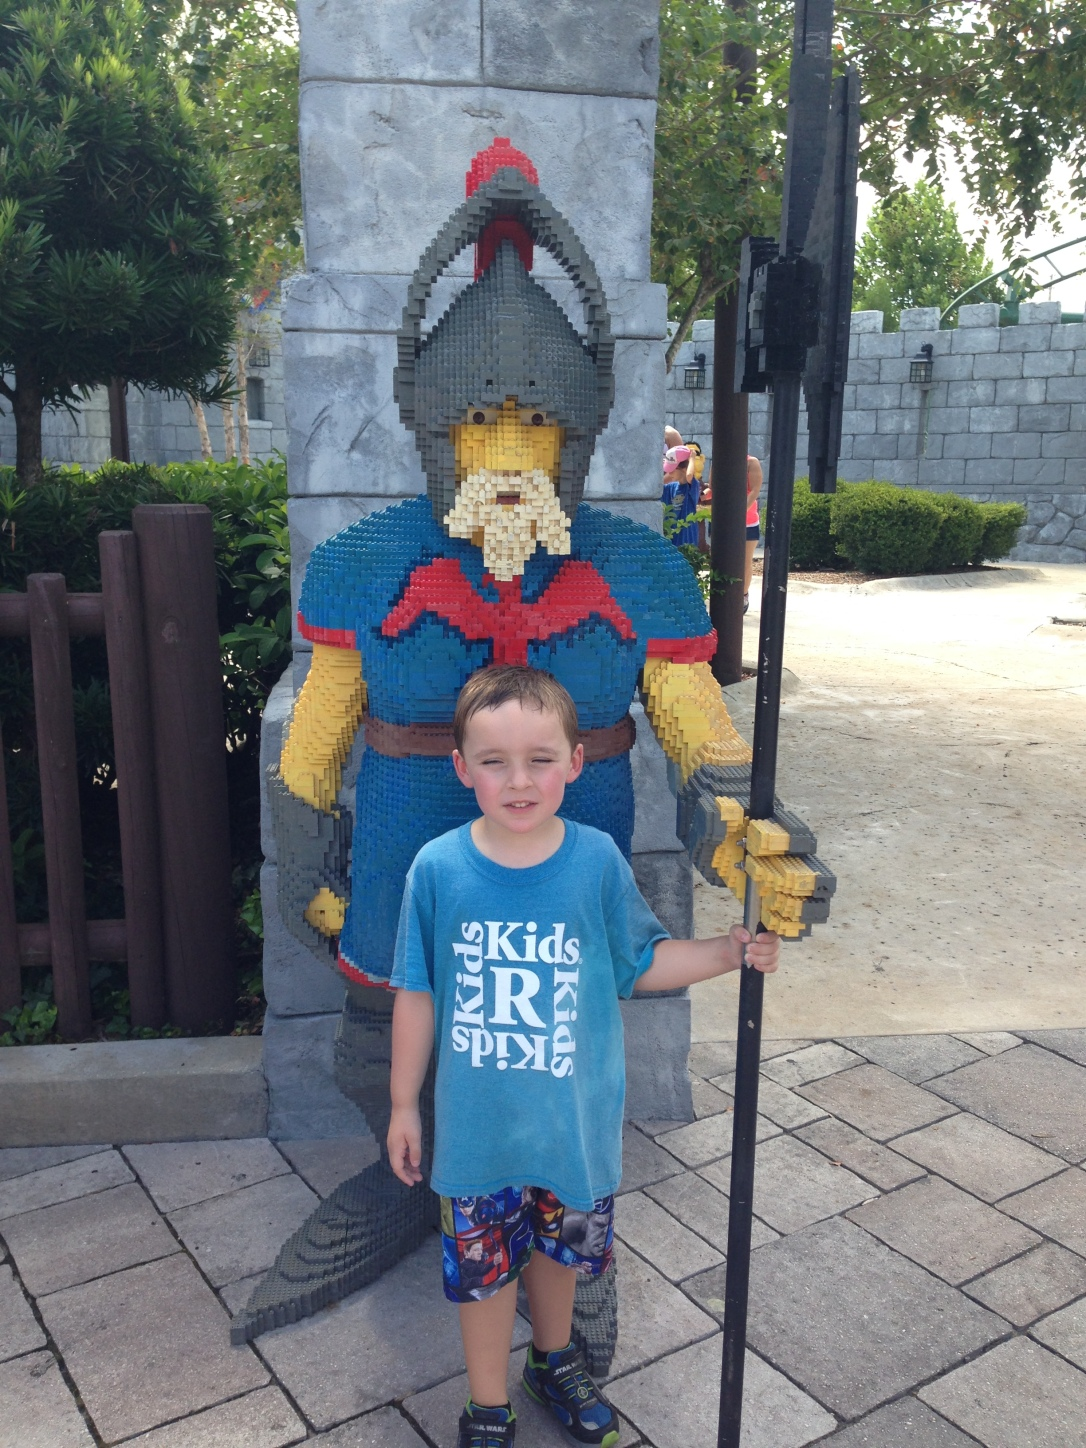 2016-08-03_KRK Junior Camp Legoland 041